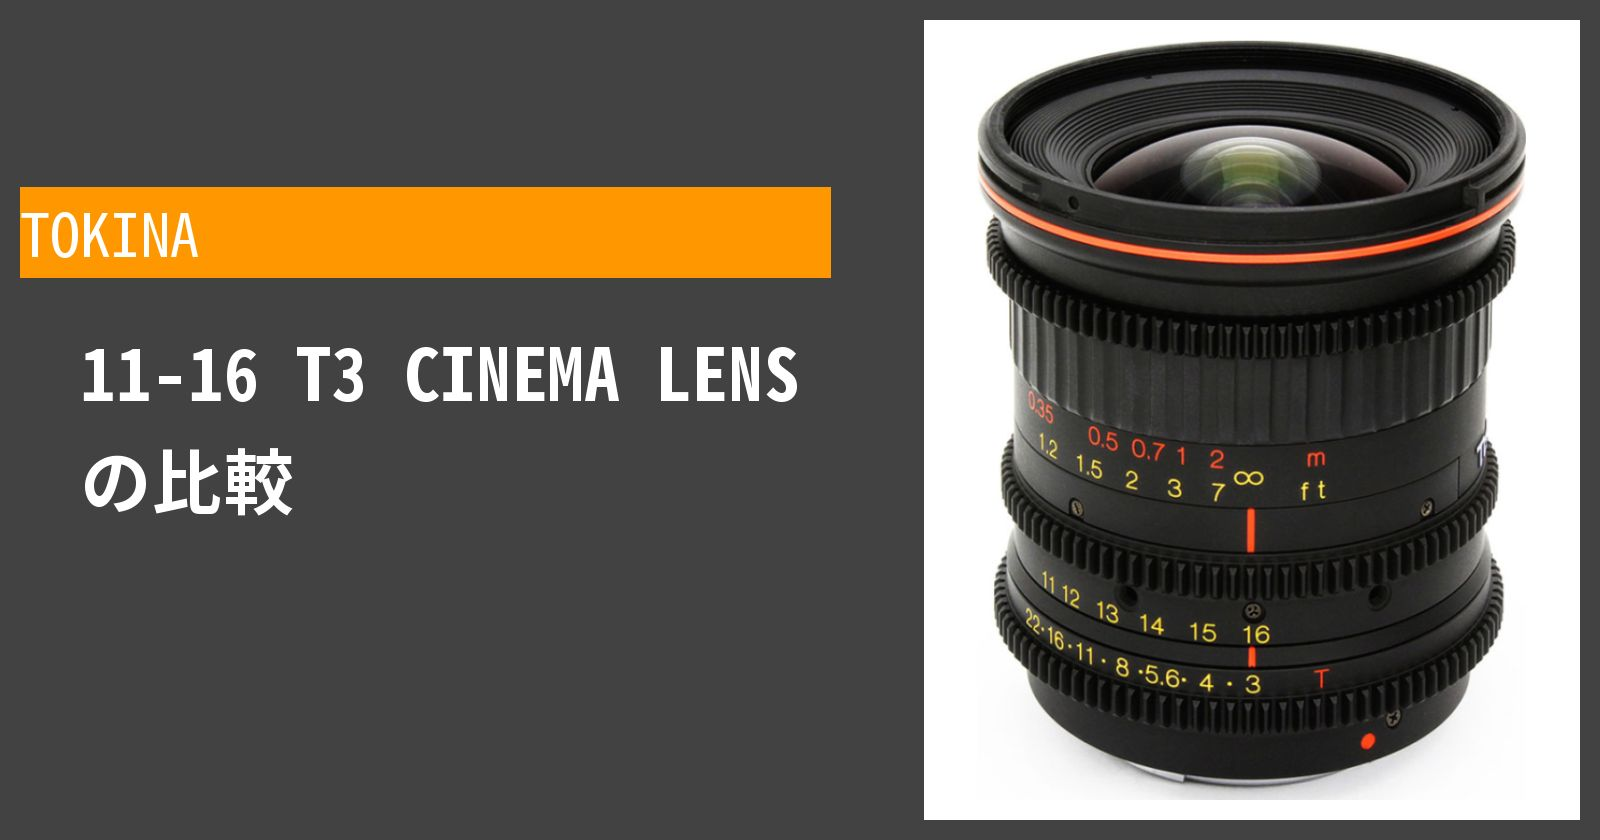 11-16 T3 CINEMA LENSを徹底評価